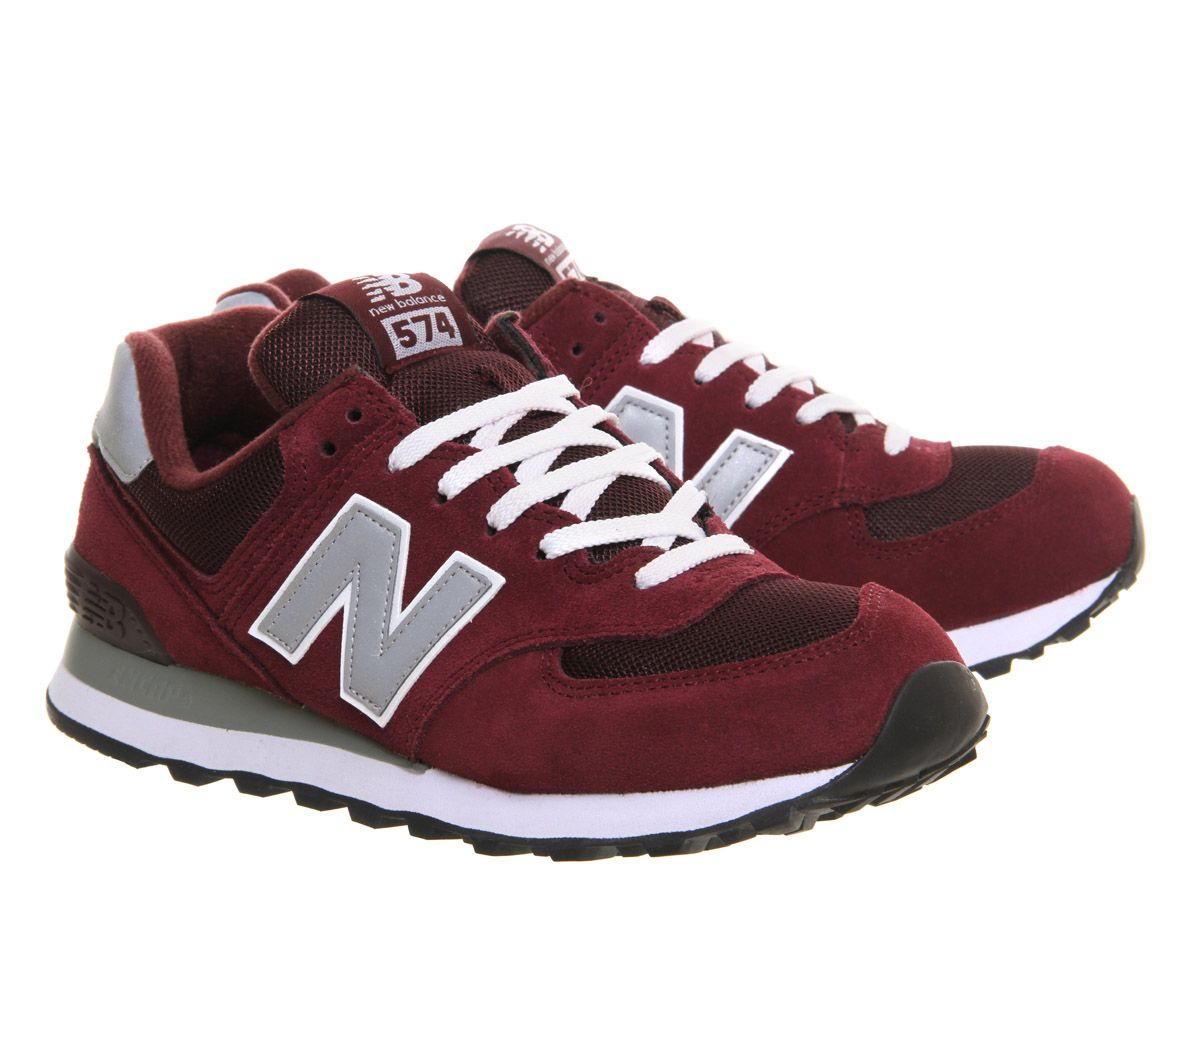 best loved 1f15c 1151b Buy Maroon Grey New Balance M574 from OFFICE.co.uk. | Shoes ...